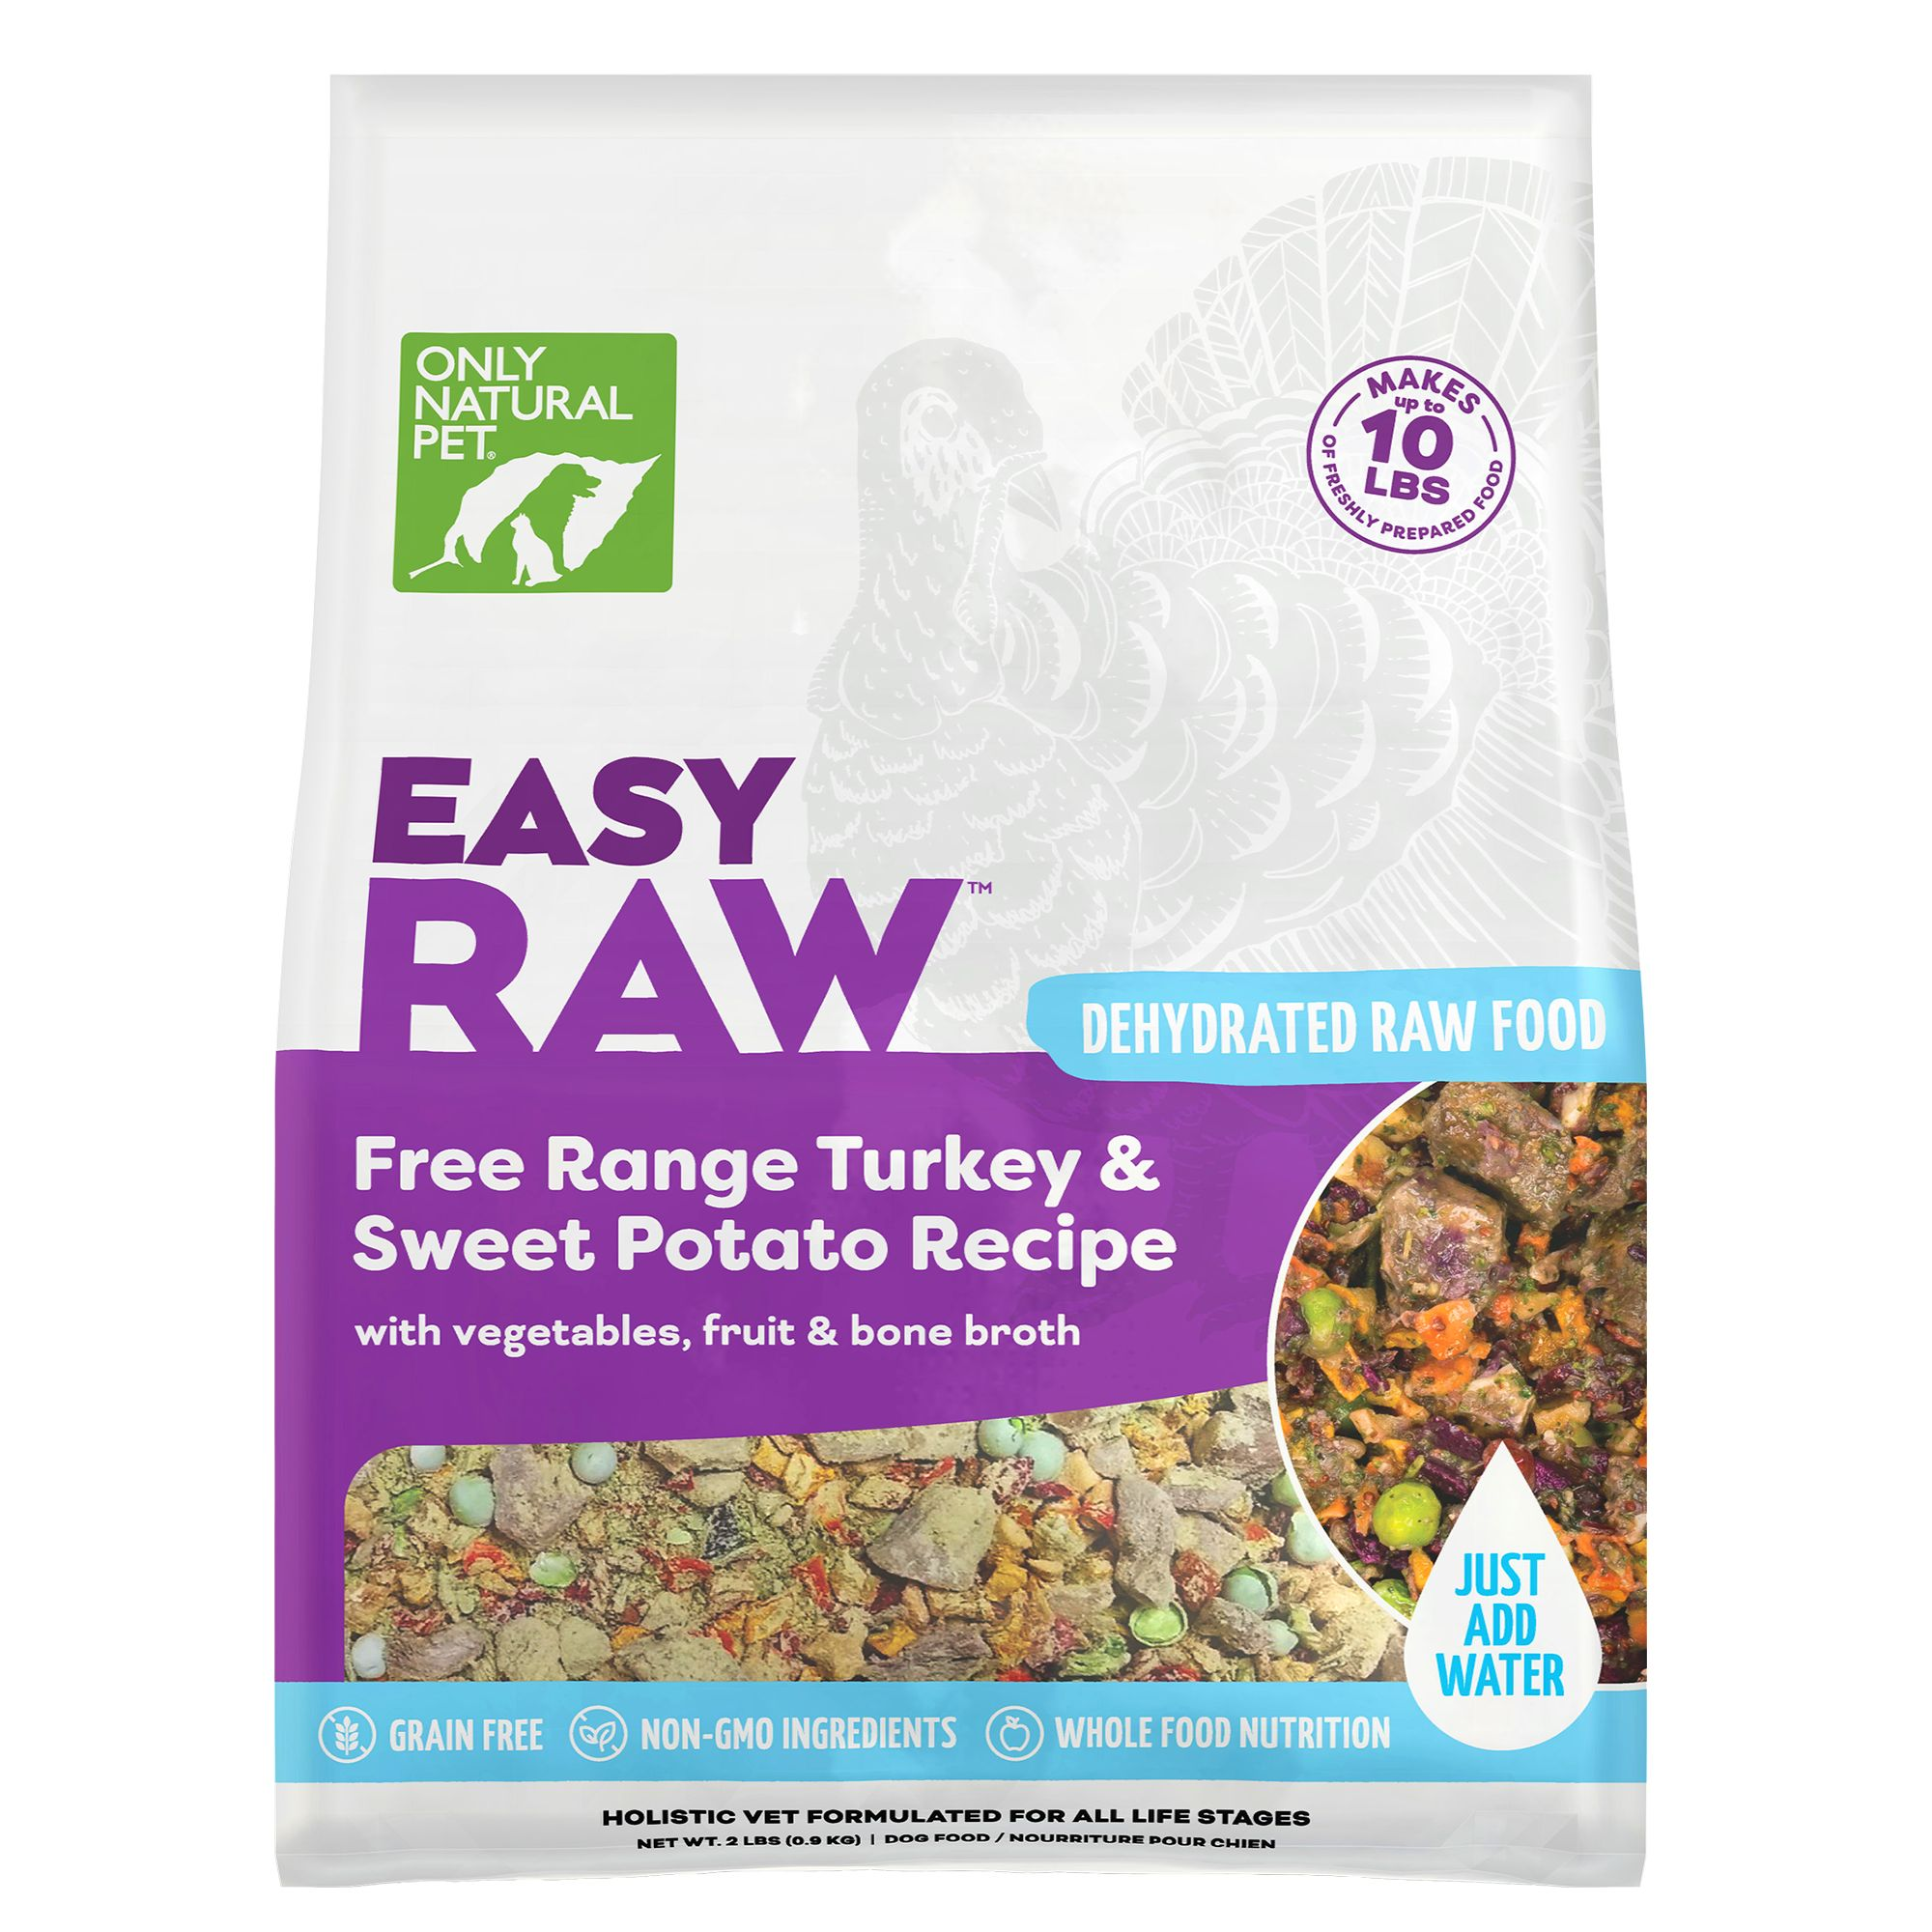 Only Natural Pet EasyRaw Dog Food - Raw, Grain Free, Dehydrated, Turkey and Sweet Potato size: 2 Lb, Raw Dehydrated Dog Food, All Life Stages